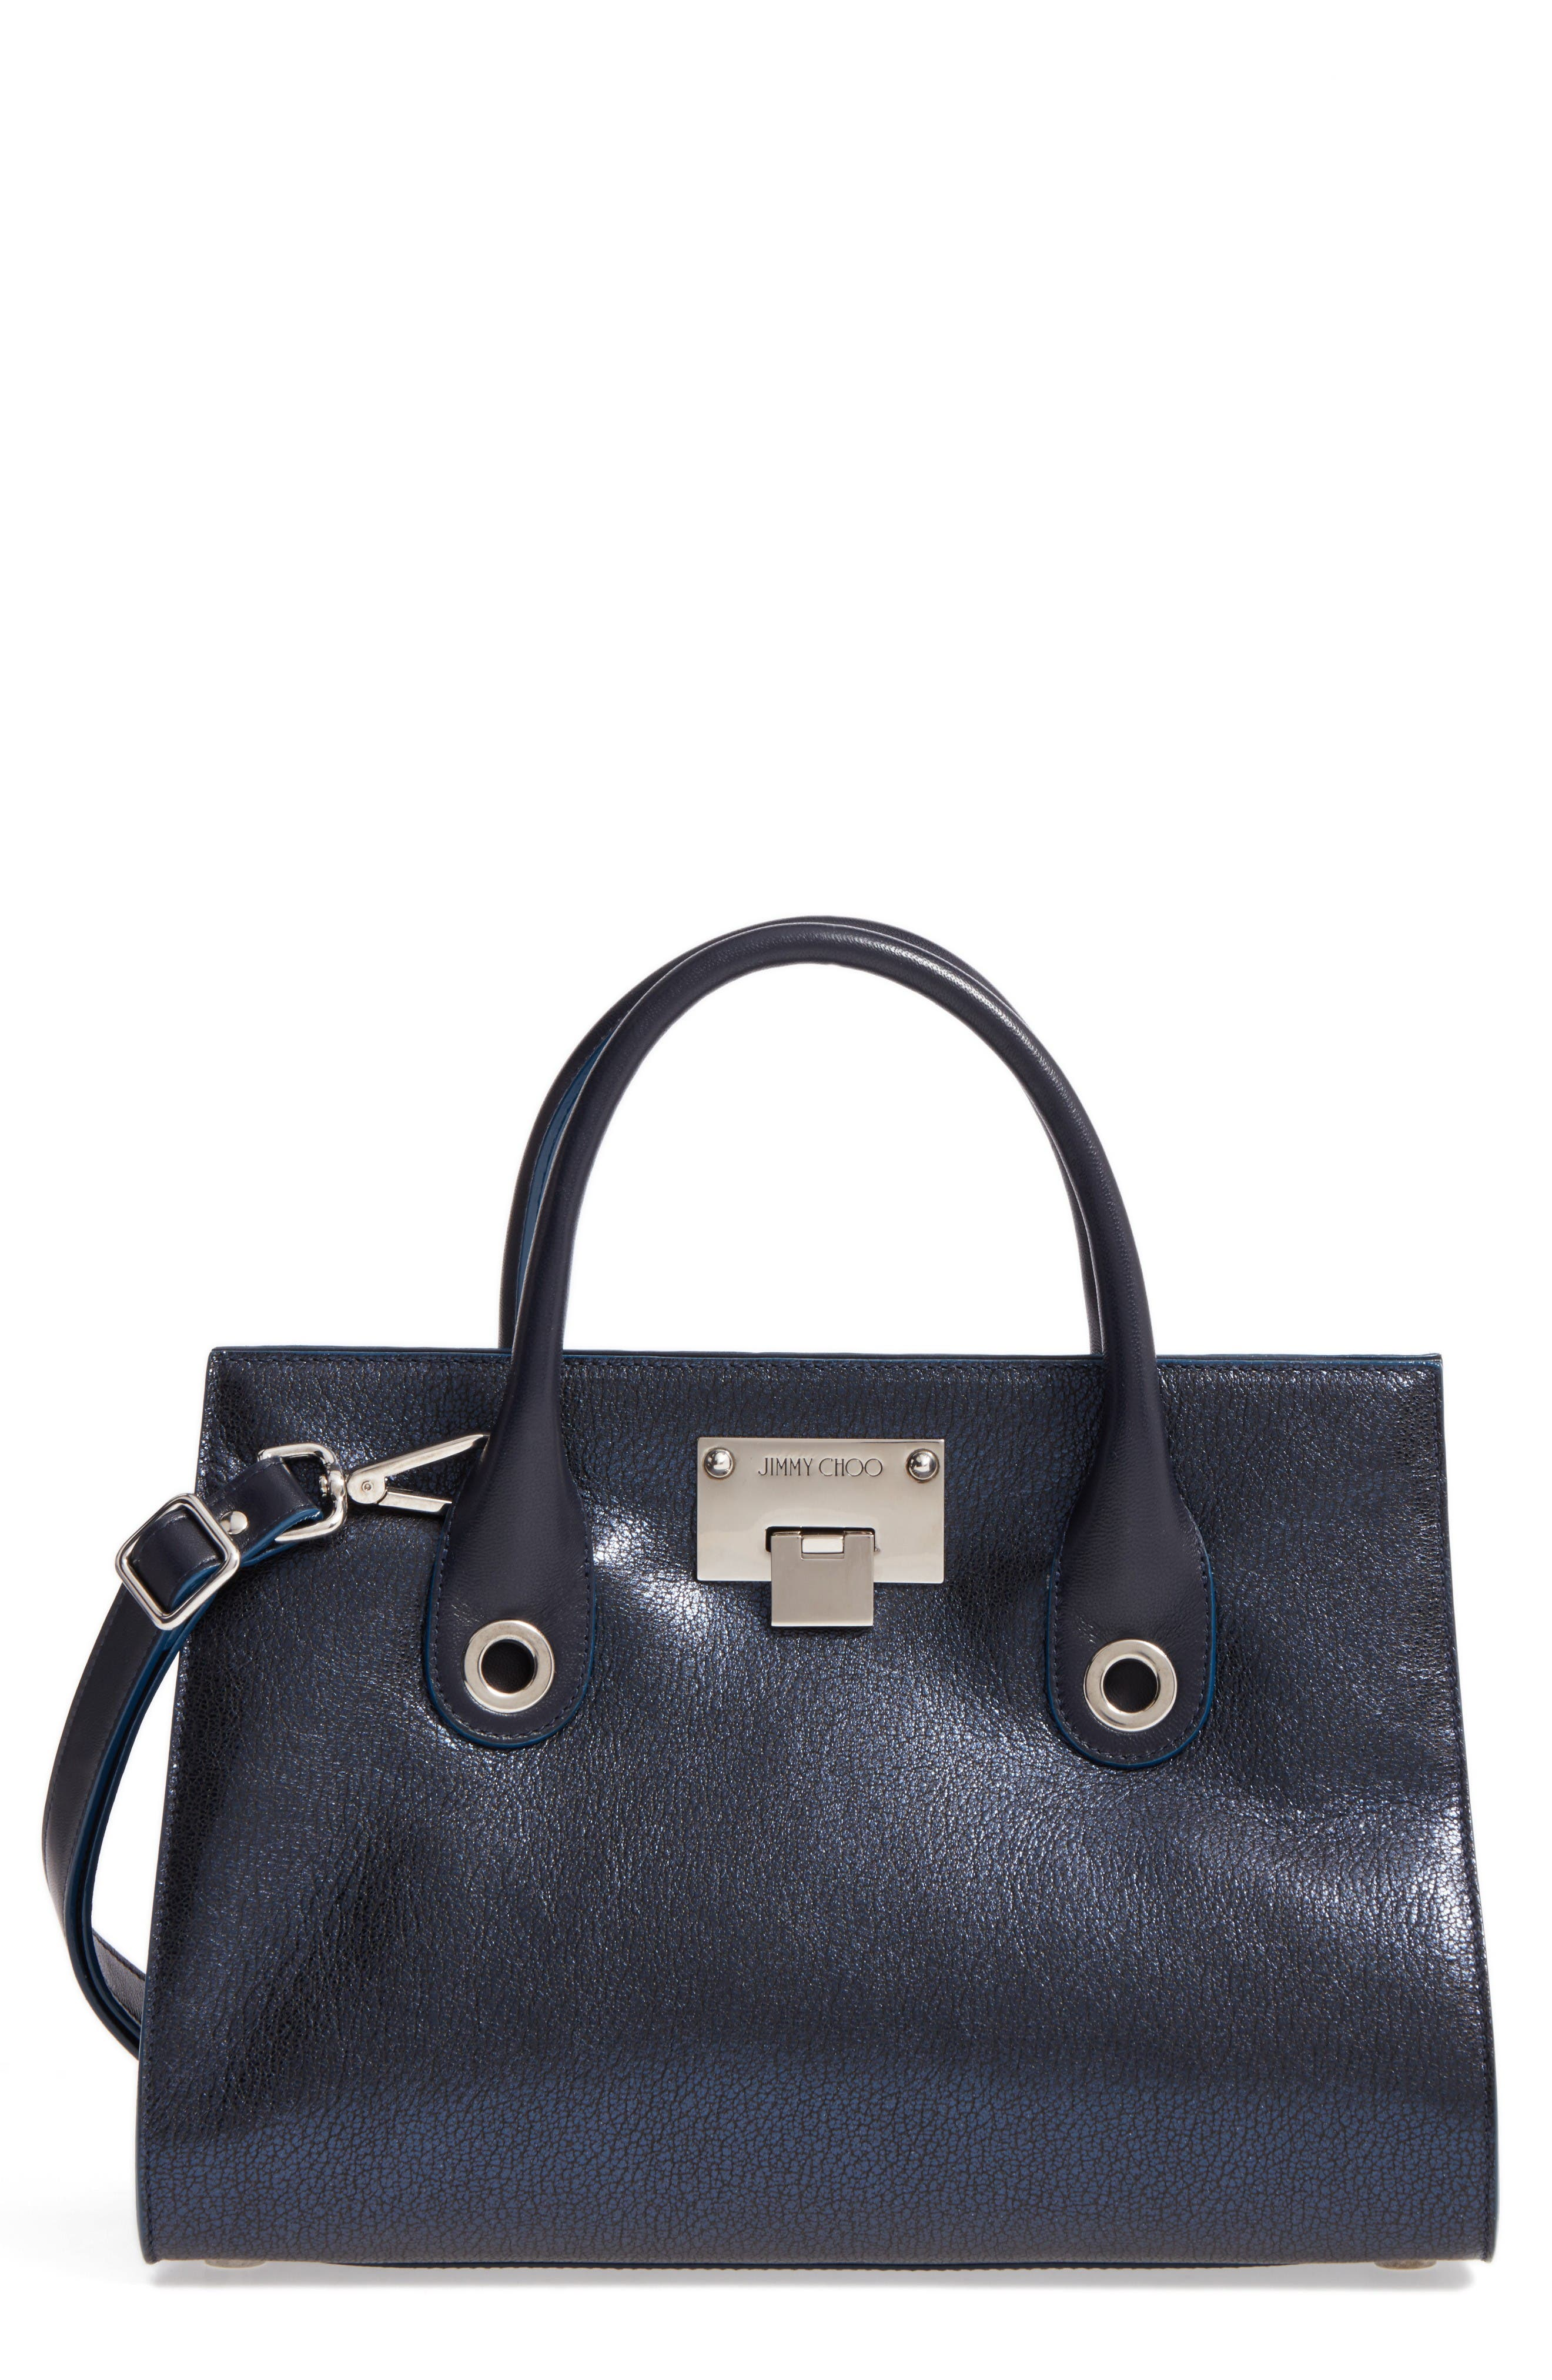 Medium Riley Metallic Leather Tote,                         Main,                         color, Navy